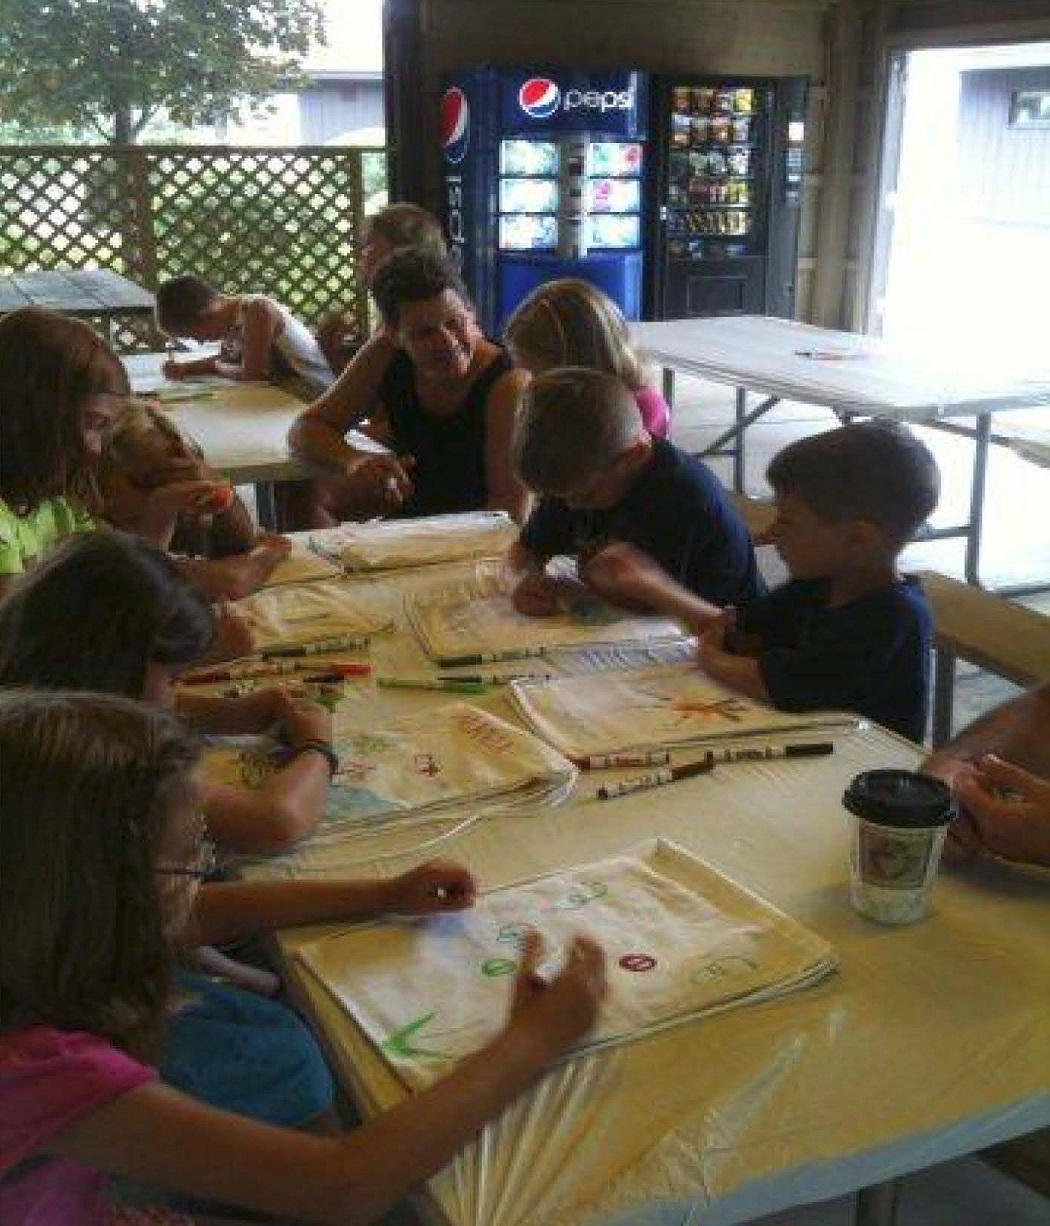 Numerous guests sitting in the Bingo Pavilion coloring on white draw string backpacks for the day's hands on activity project.